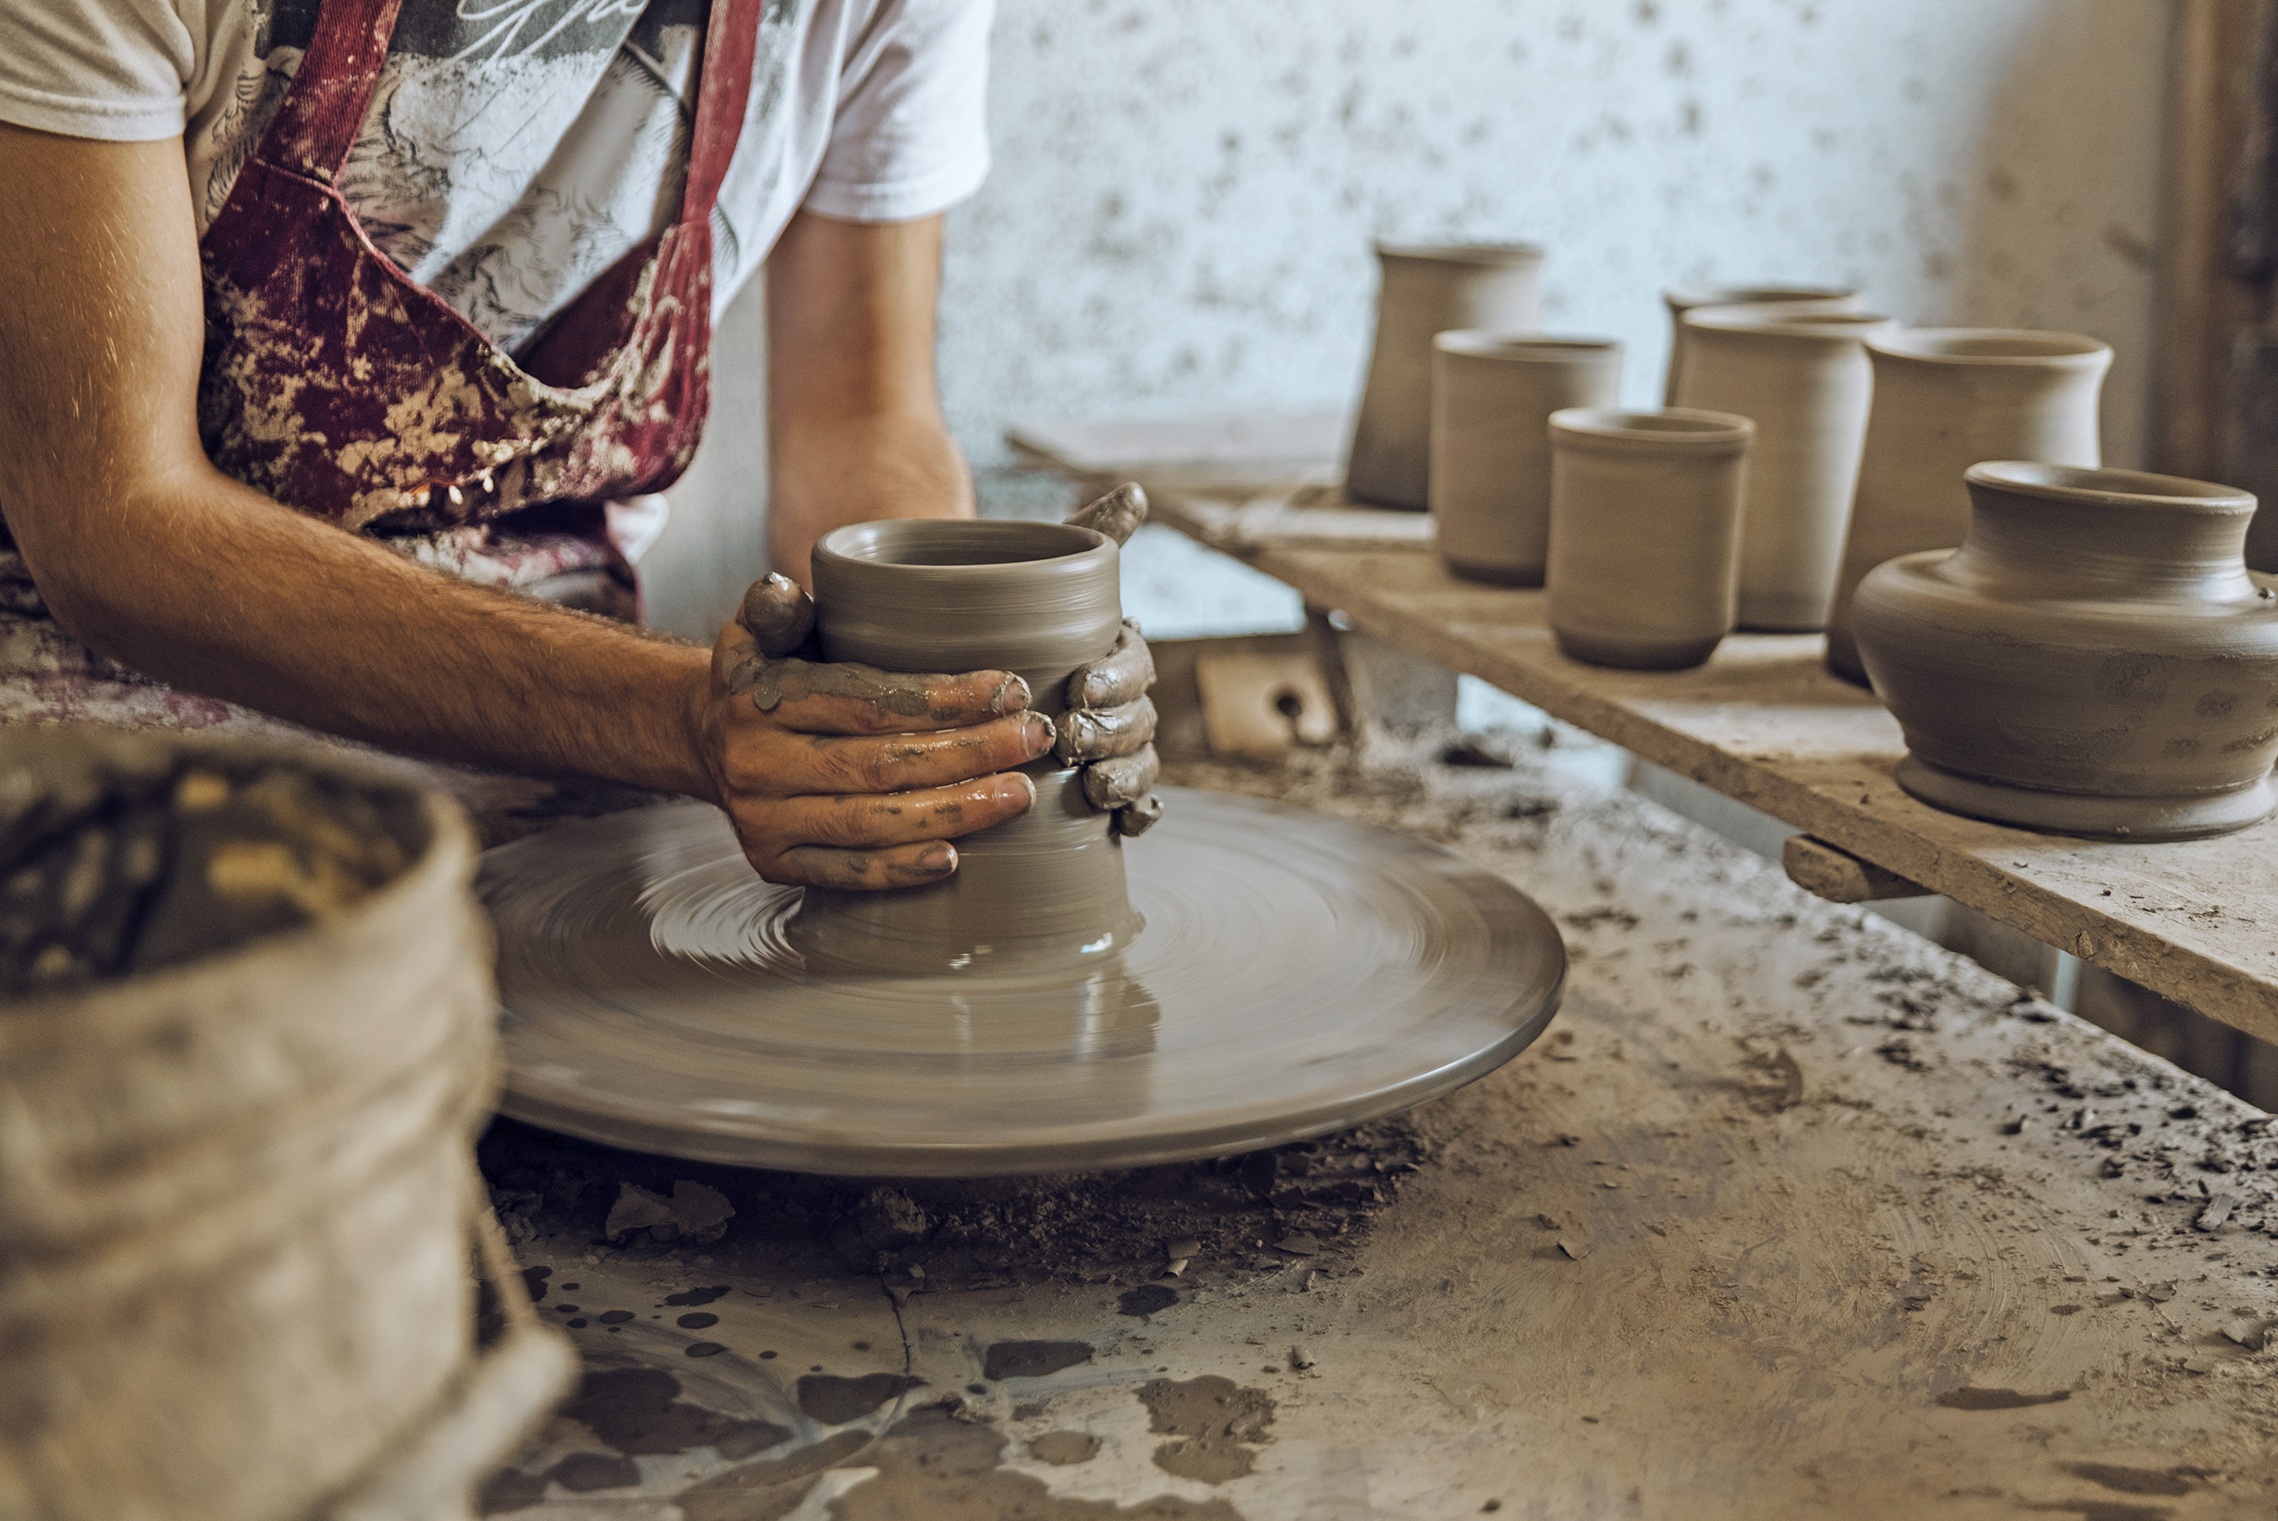 ART AND TRADITION IN TUSCANY: THE WORLD OF MONTELUPO FIORENTINO, THE LAND OF CERAMICS